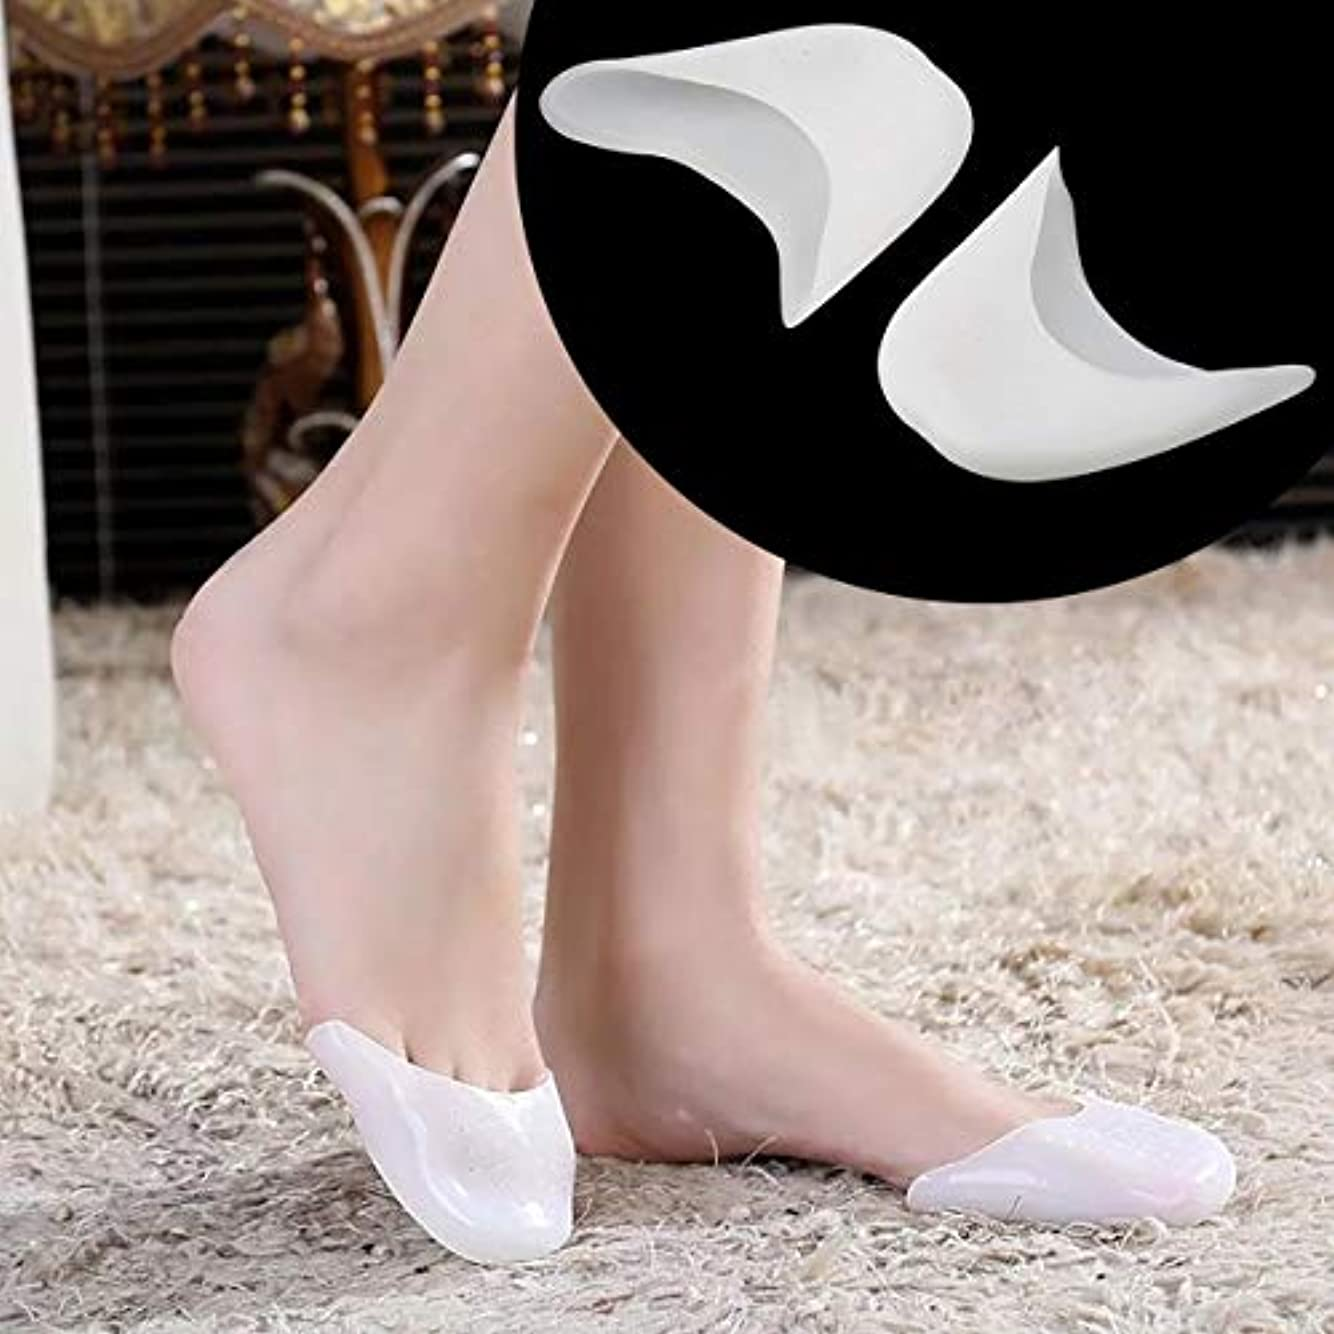 性的いう特徴づけるMultifunctional Silicone Gel Toe Sleeve Comfortable Ballet High Heel Toe Sleeve Pain Relief Protect Foot Care...